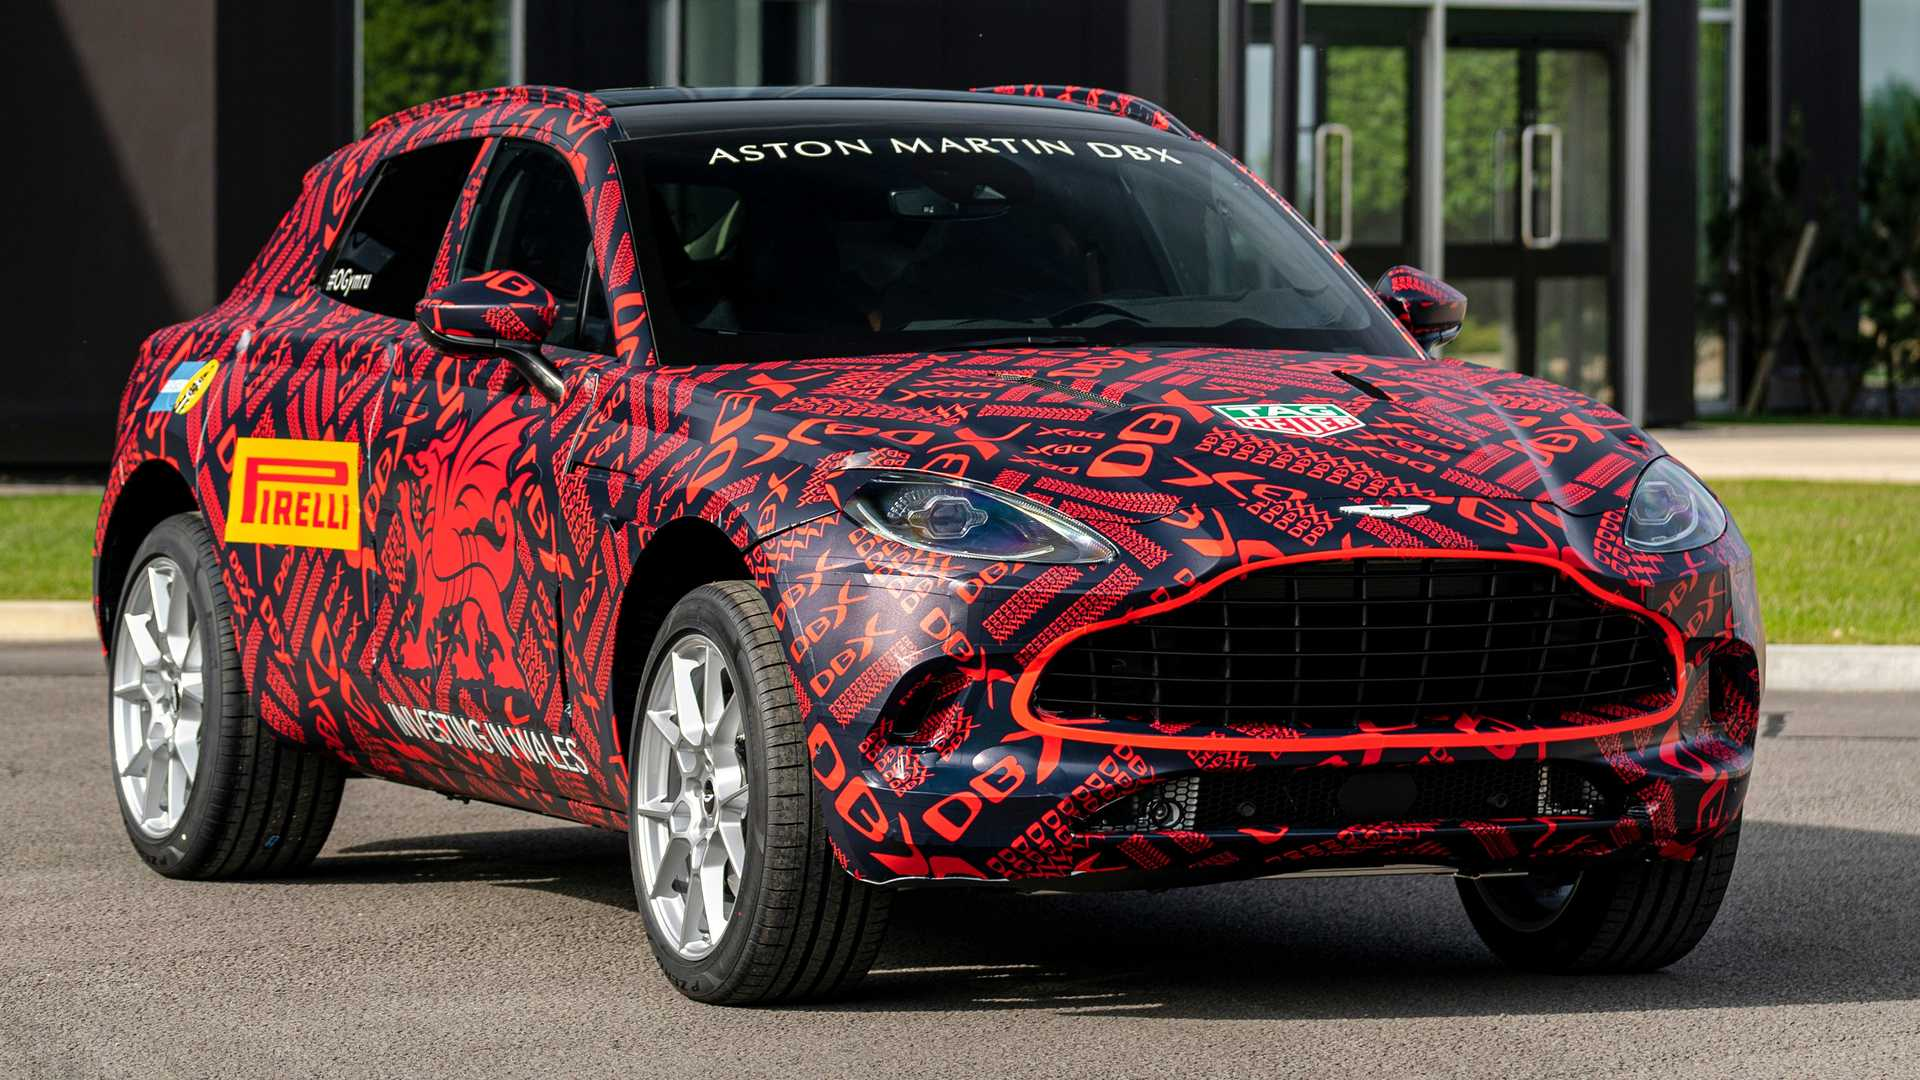 Aston Martin's second factory located in Saint Athan, Wales, Great Britain, has opened for business and is currently assembling pre-production samples of the upcoming DBX SUV